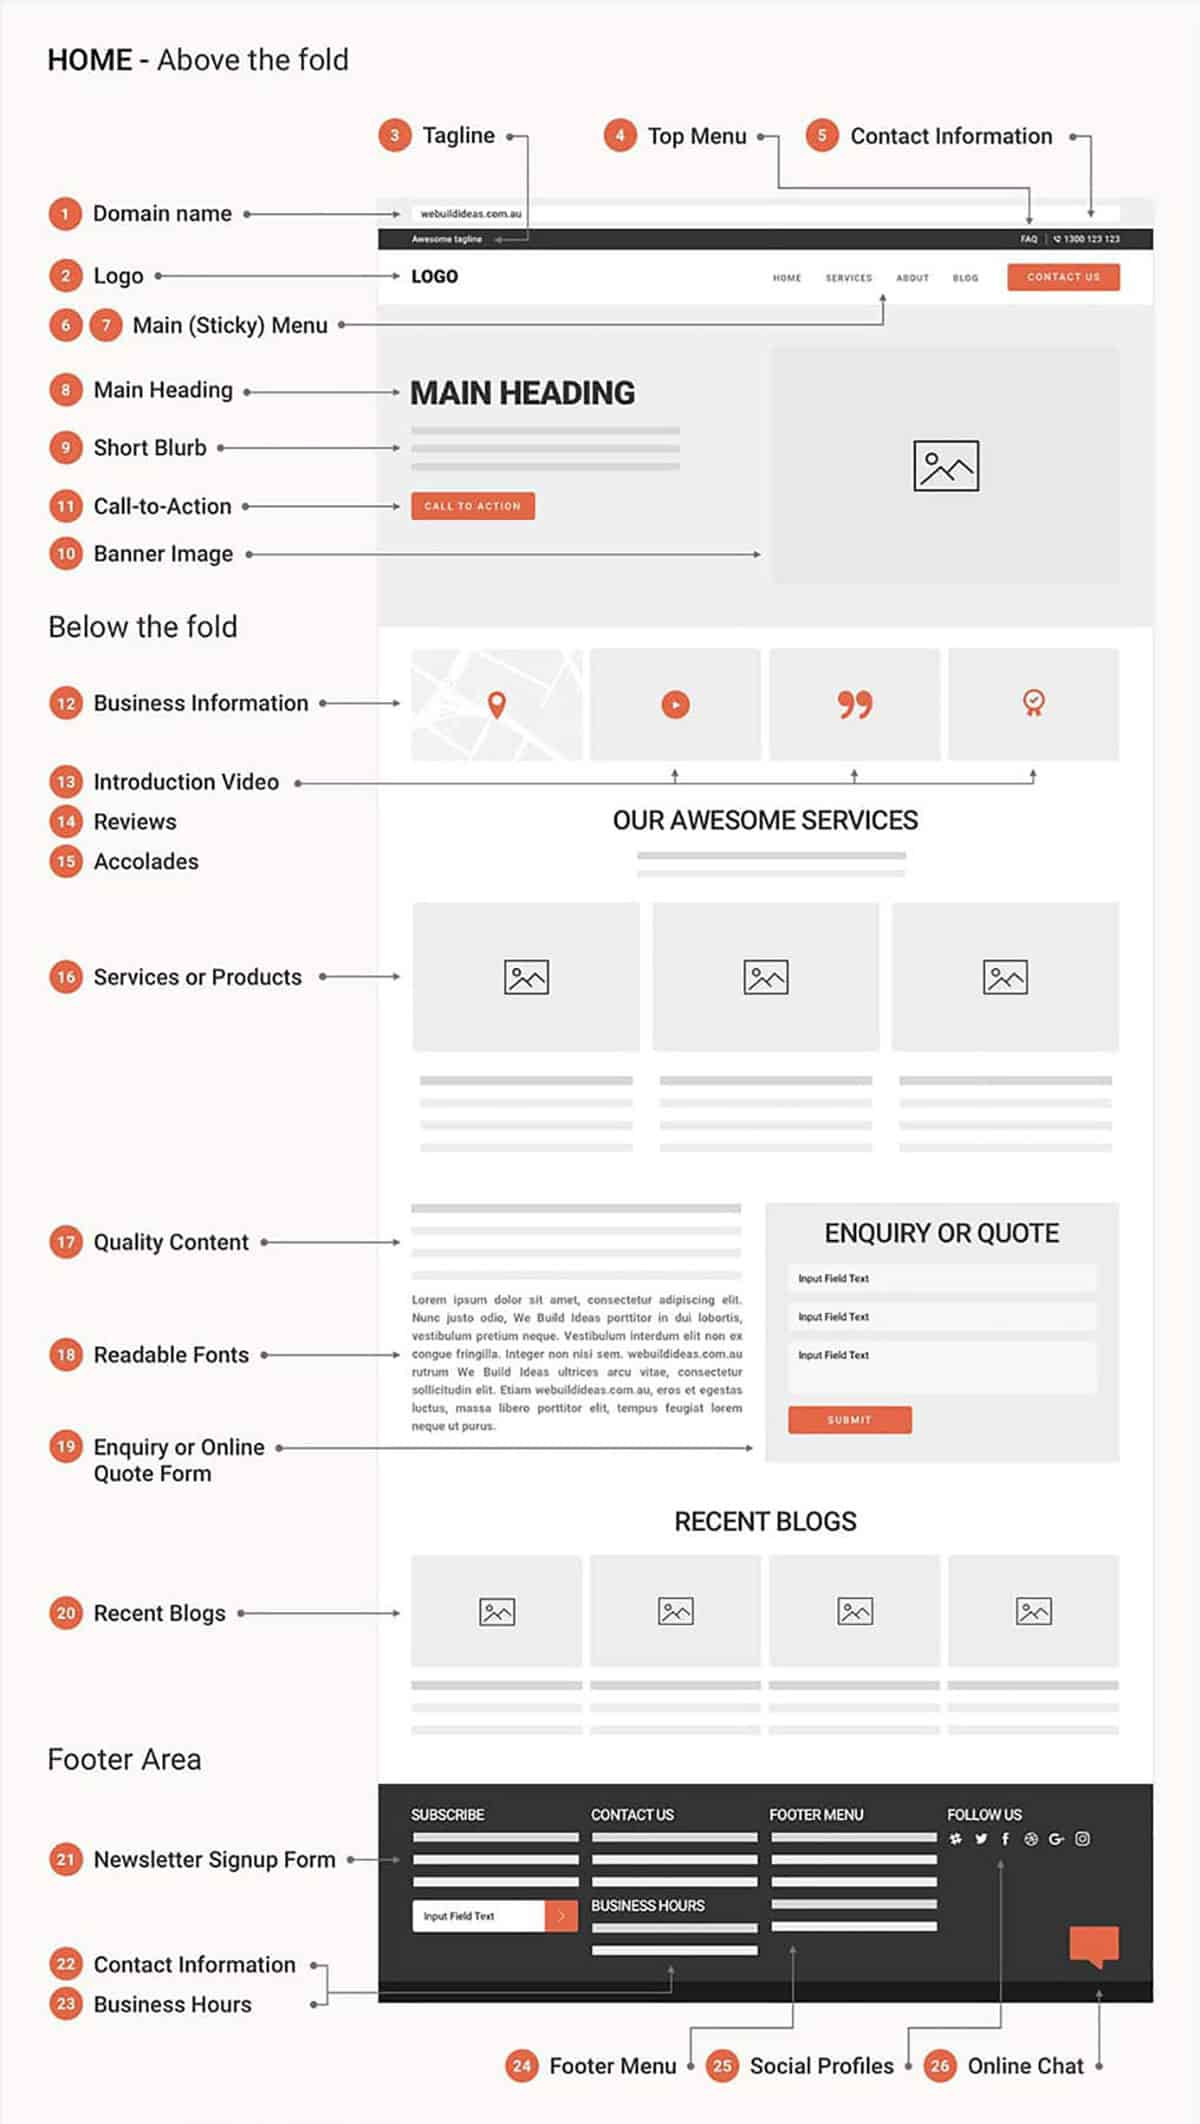 70-Small-Business-Website-Must-Haves-Infographic-We-Build-Ideas